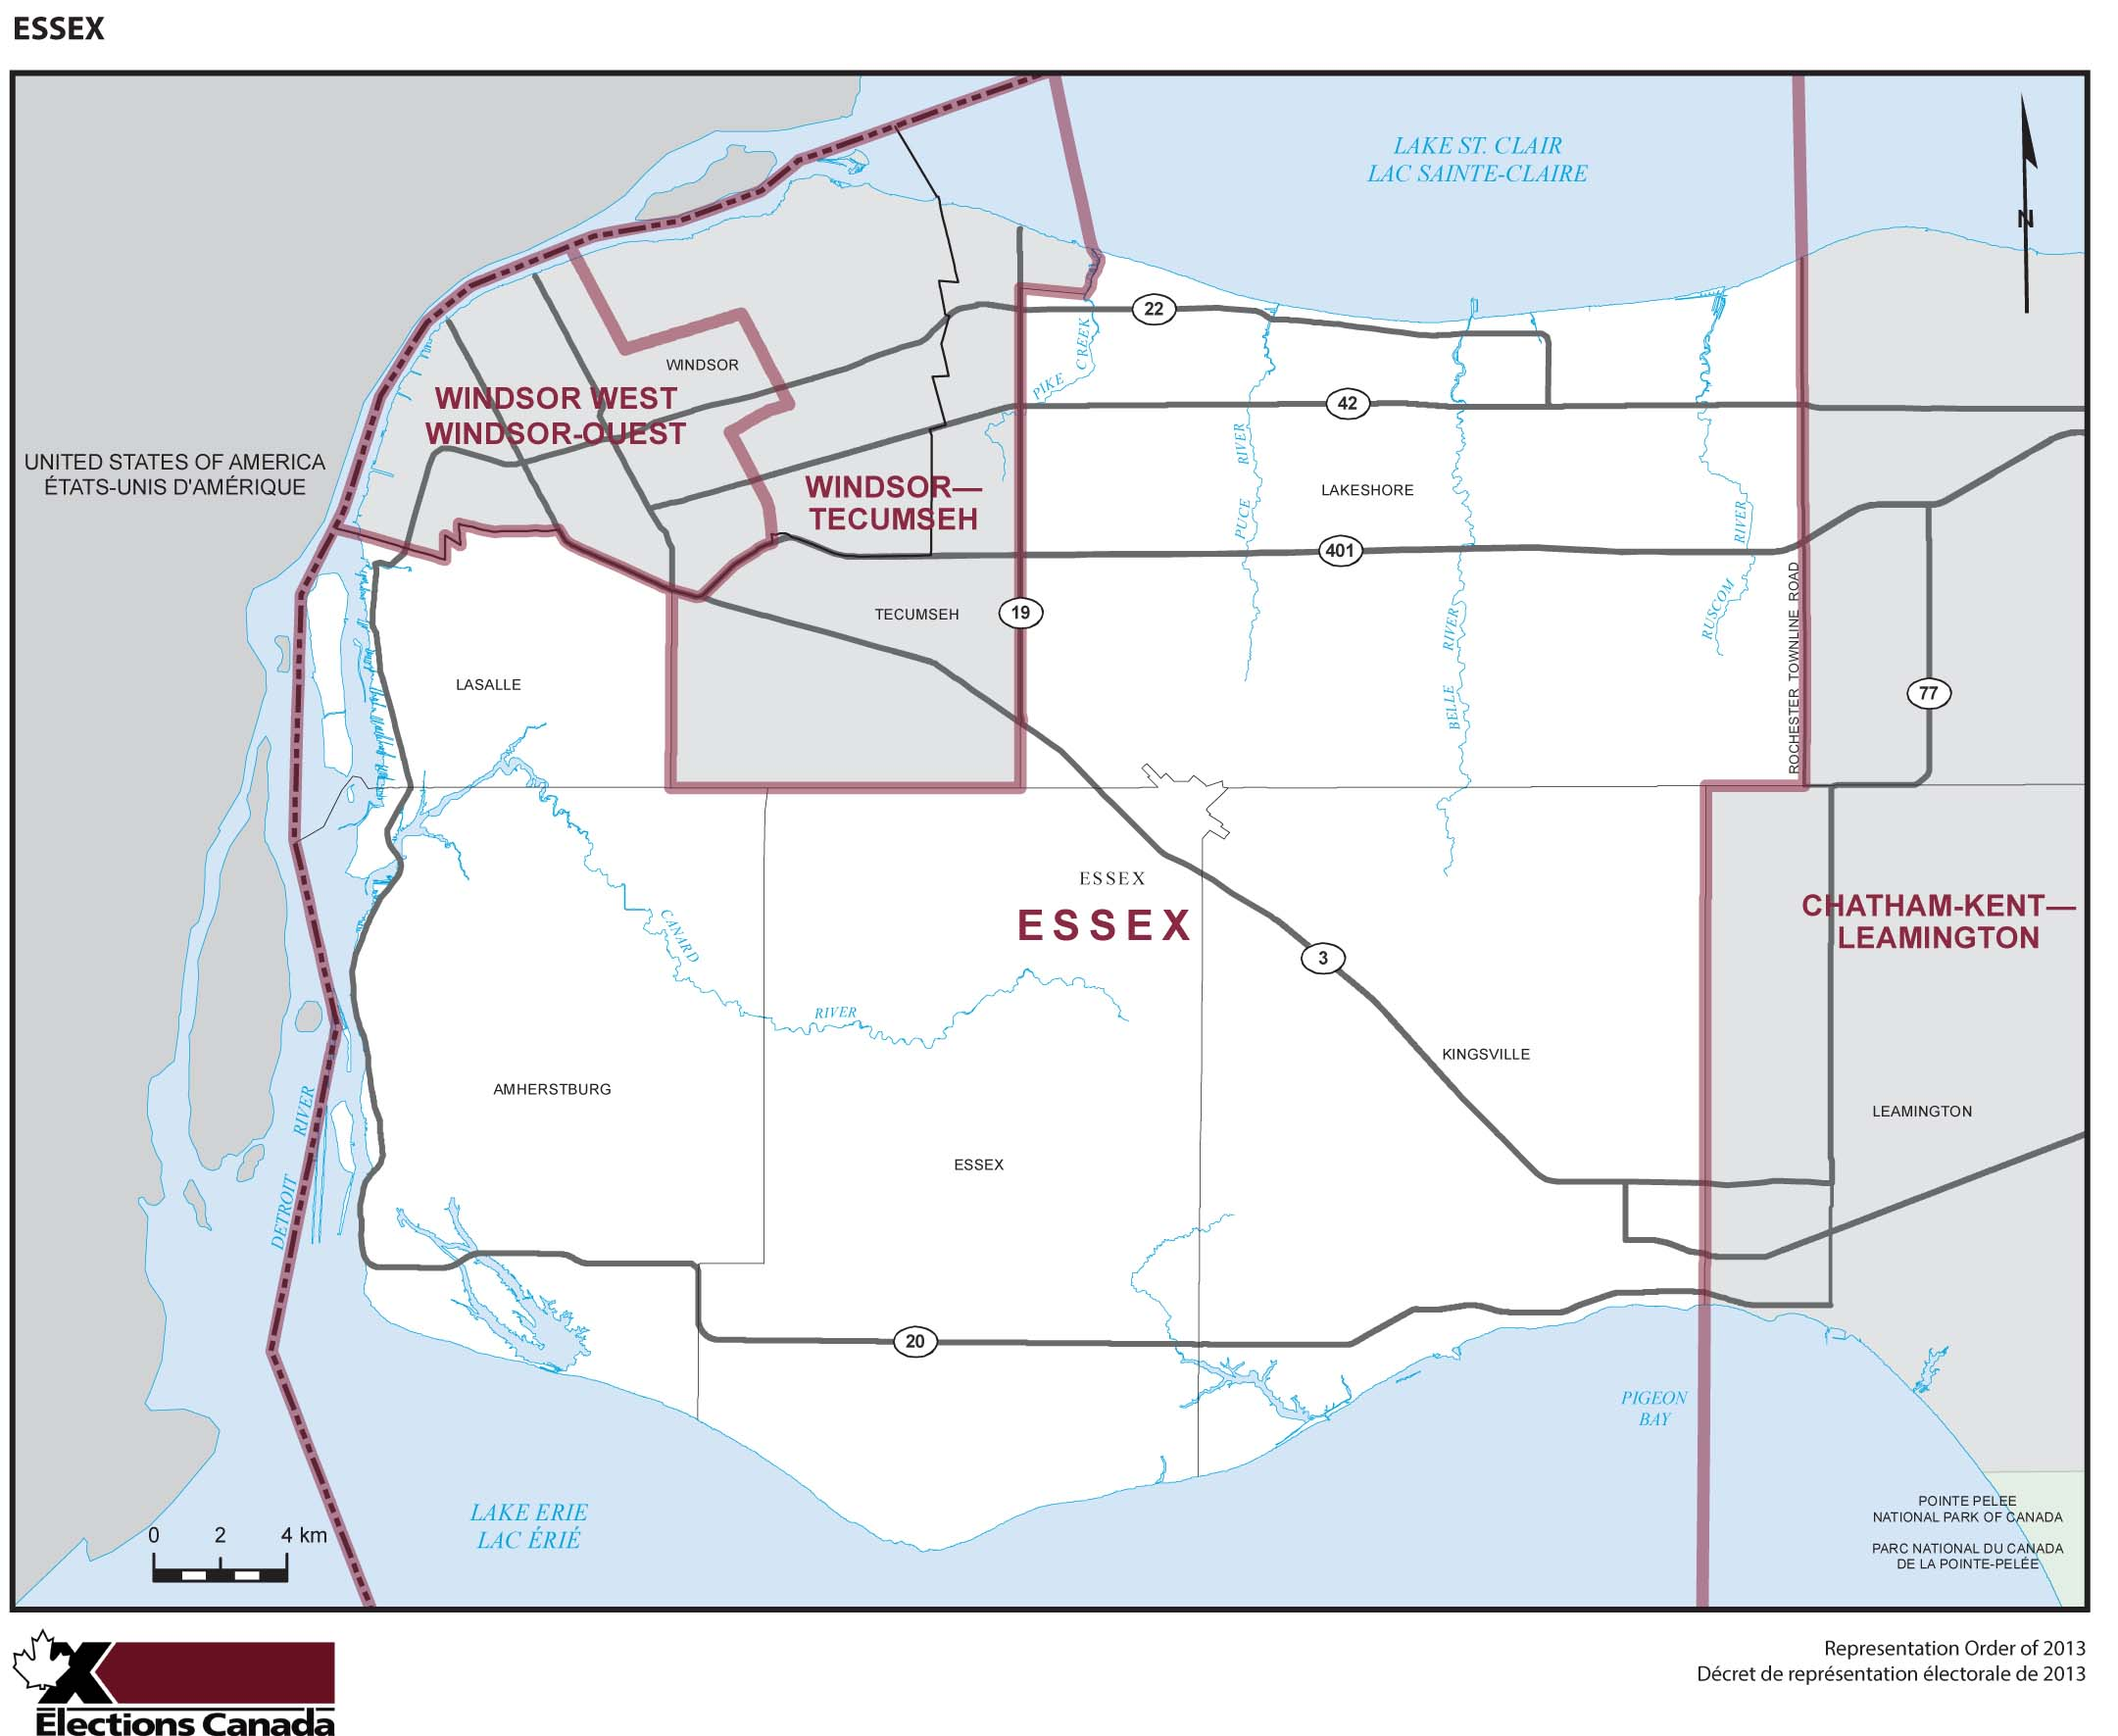 Map: Essex, Federal electoral district, 2013 Representation Order (in white), Ontario